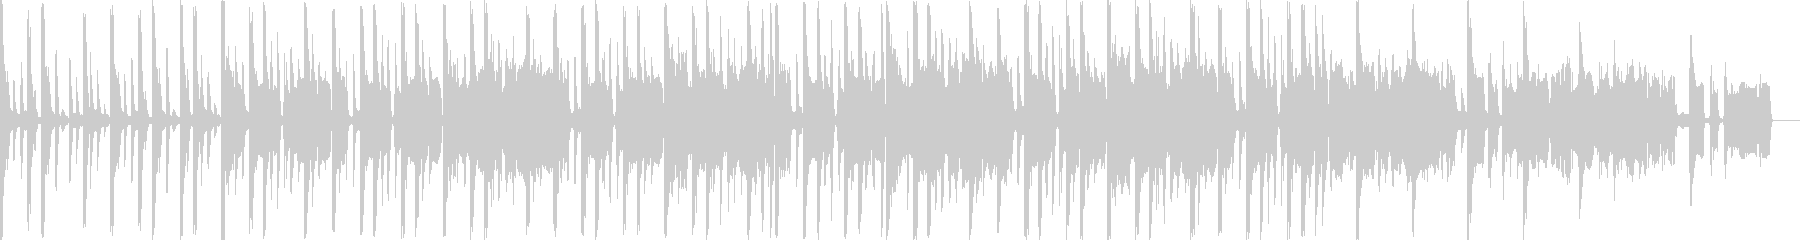 Songs for electric jingles's unreproduced waveform